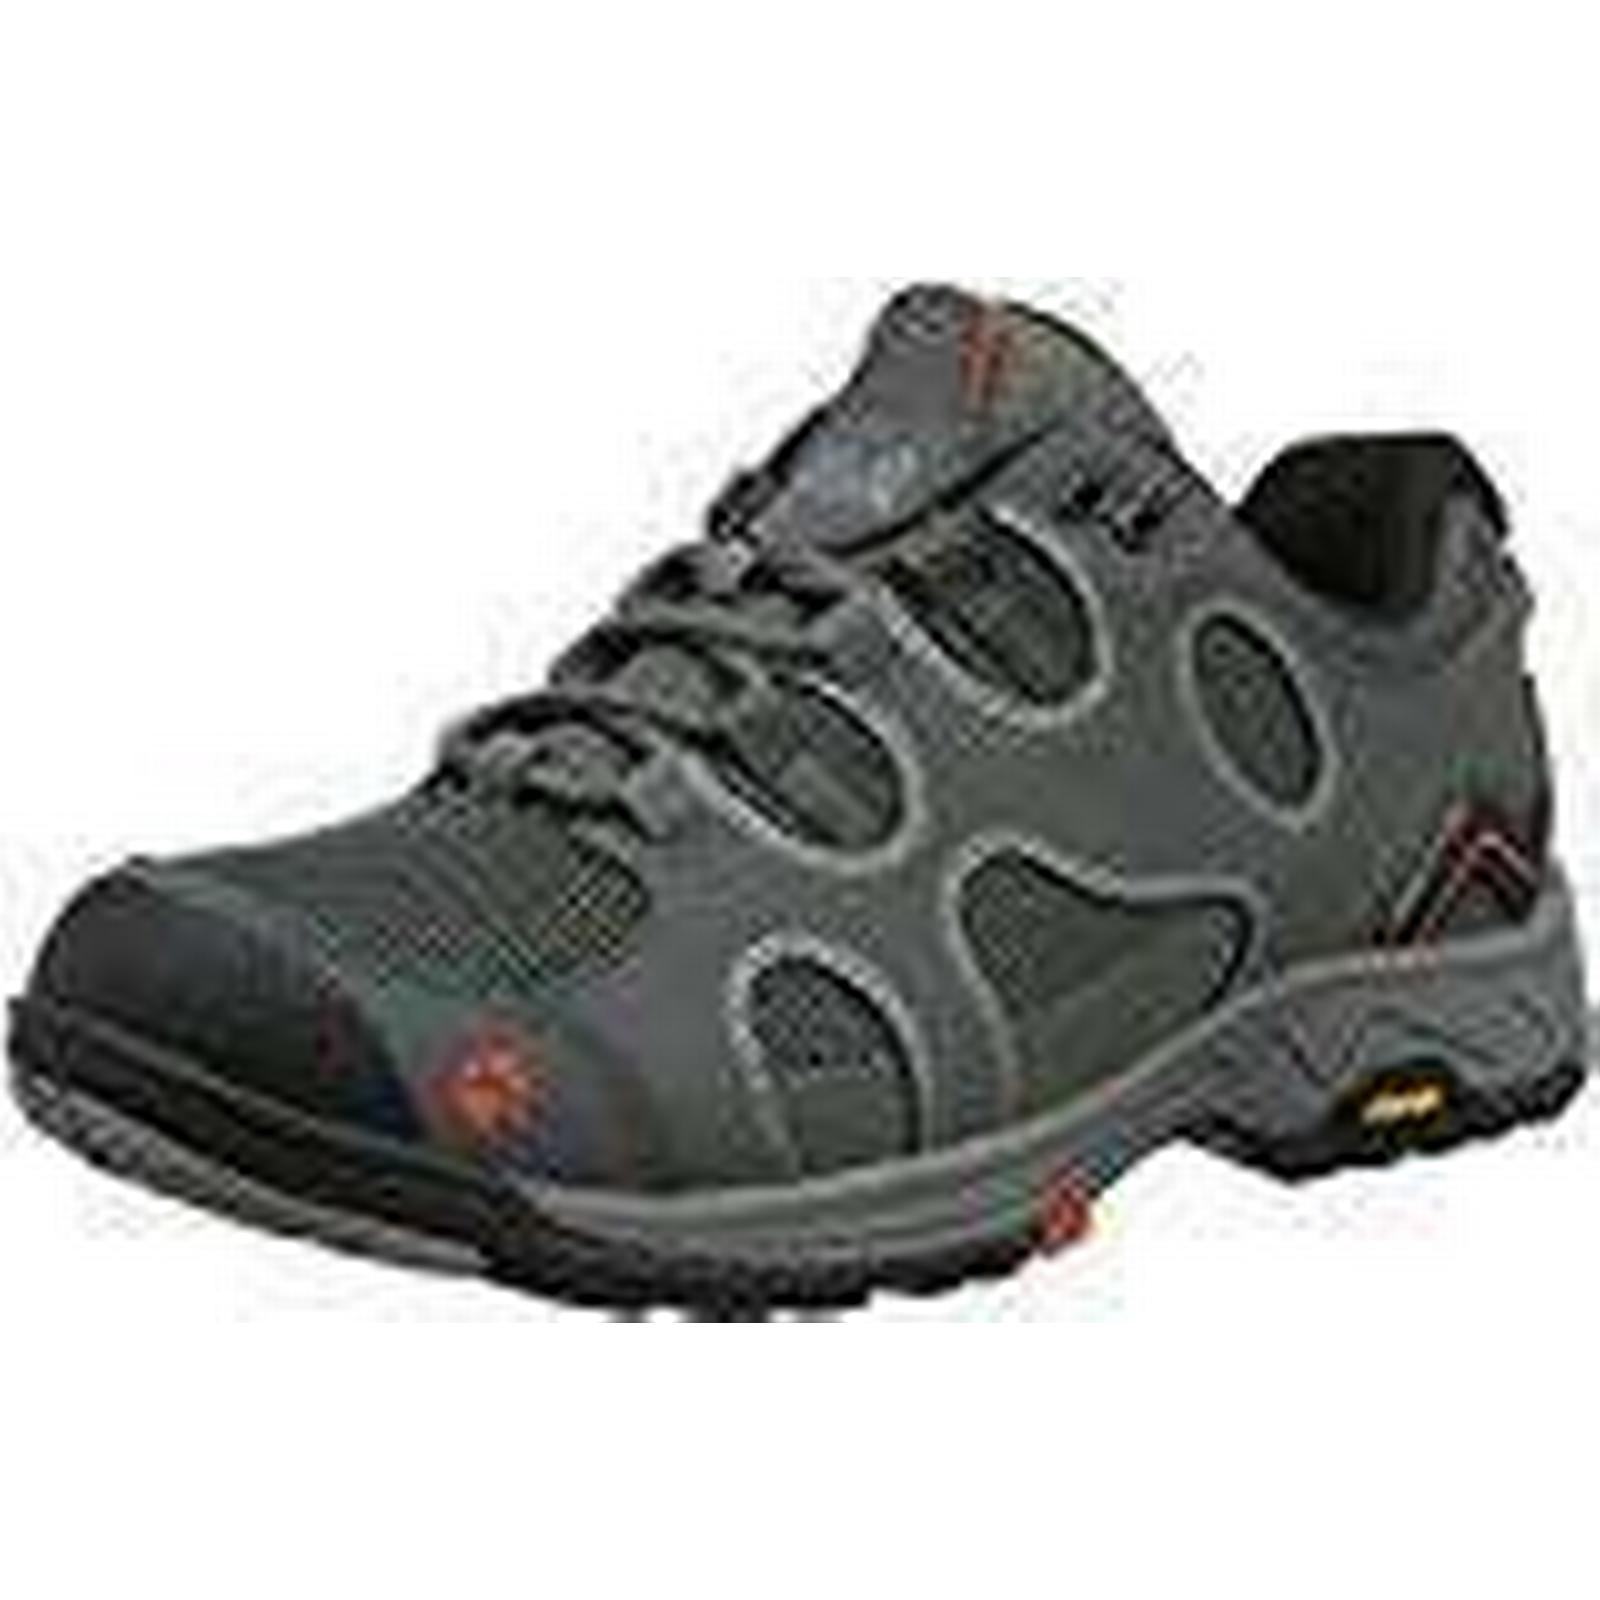 Jack Wolfskin Women's Crosswind W Grey Low Rise Hiking Boots, Grey W (Tarmac Grey), 37.5 37.5 EU 0daf7a